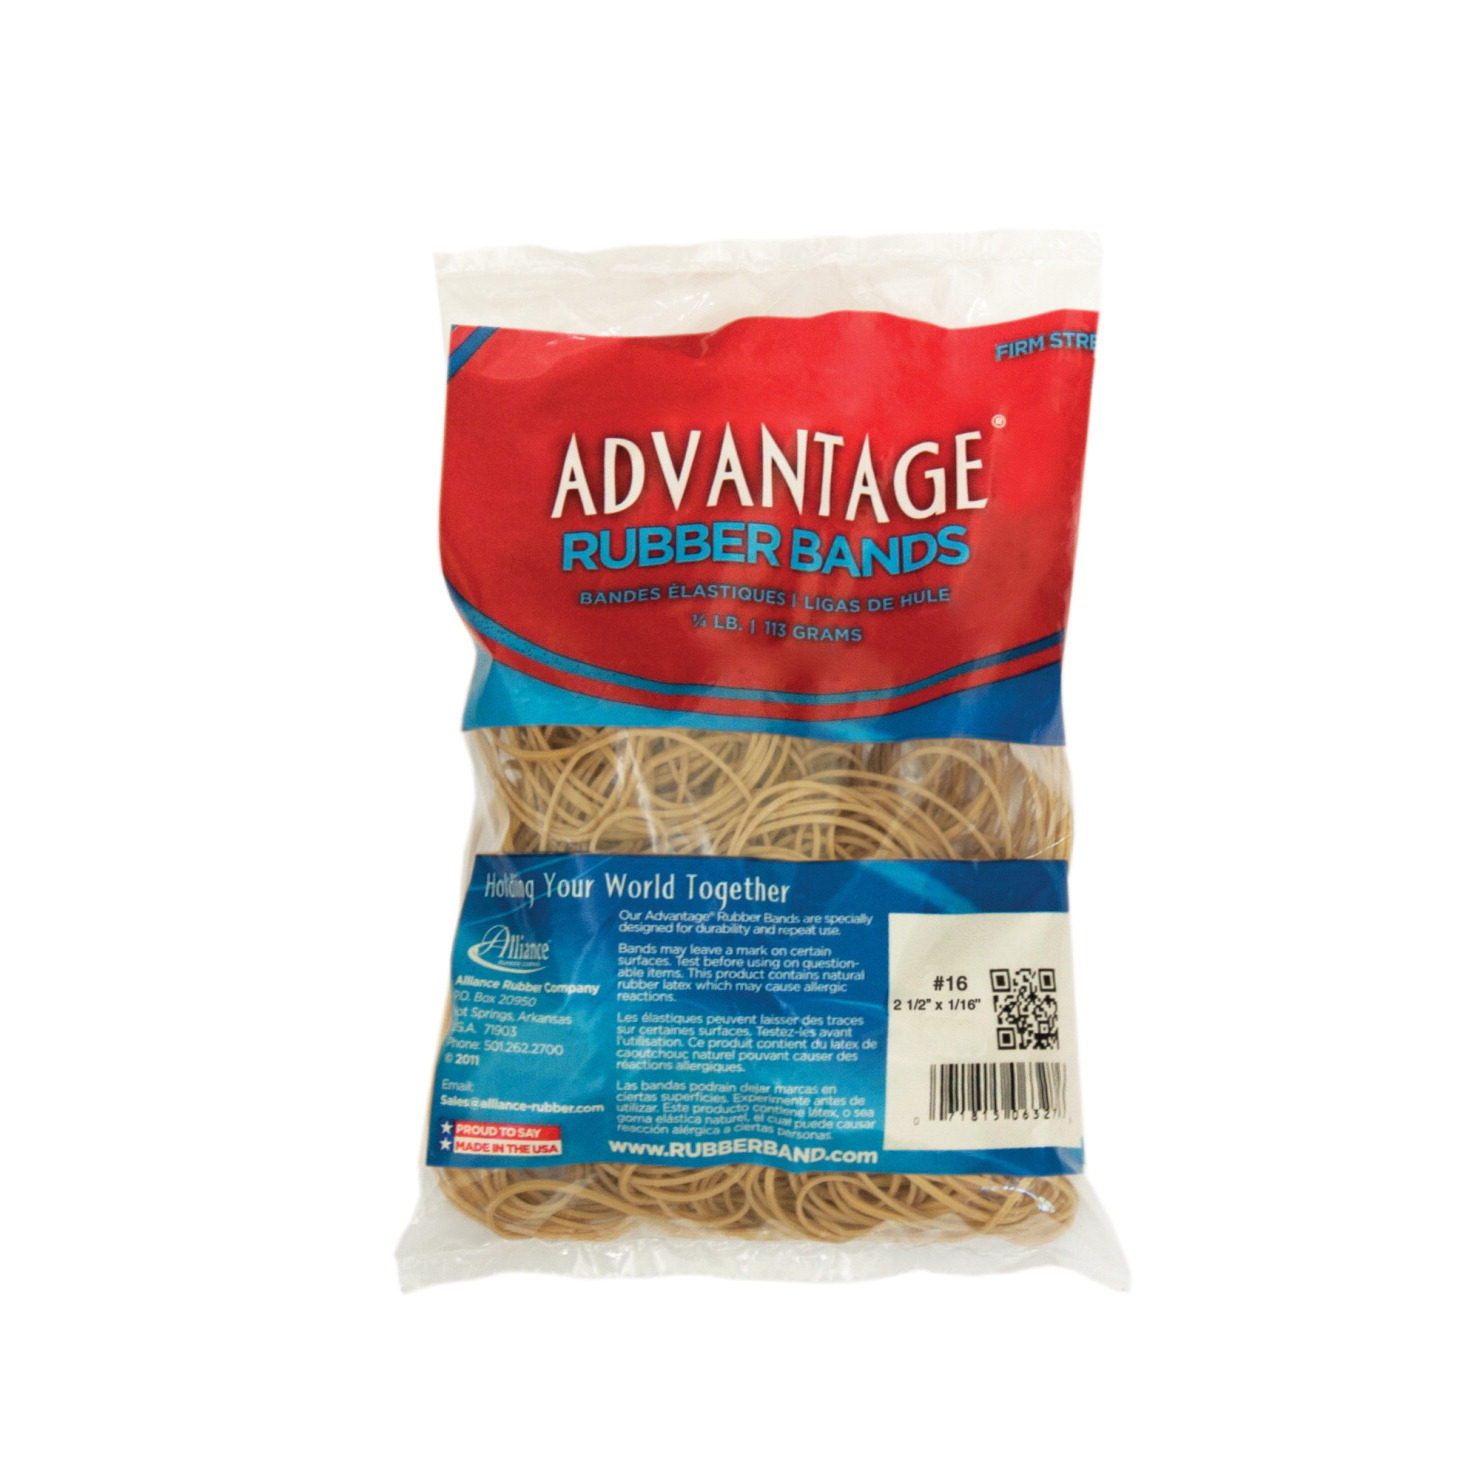 Alliance Advantage Latex Rubber Band, No 32, 3 L x 1 8 W in, 1 4 lb Box, Natural by ALLIANCE RUBBER CO